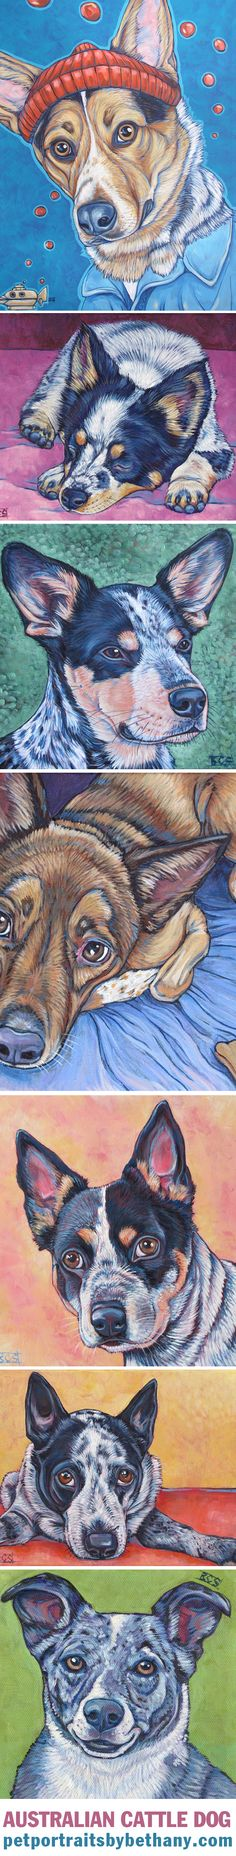 Australian Cattle Dogs (Blue Heelers and Red Heeler) by Bethany.